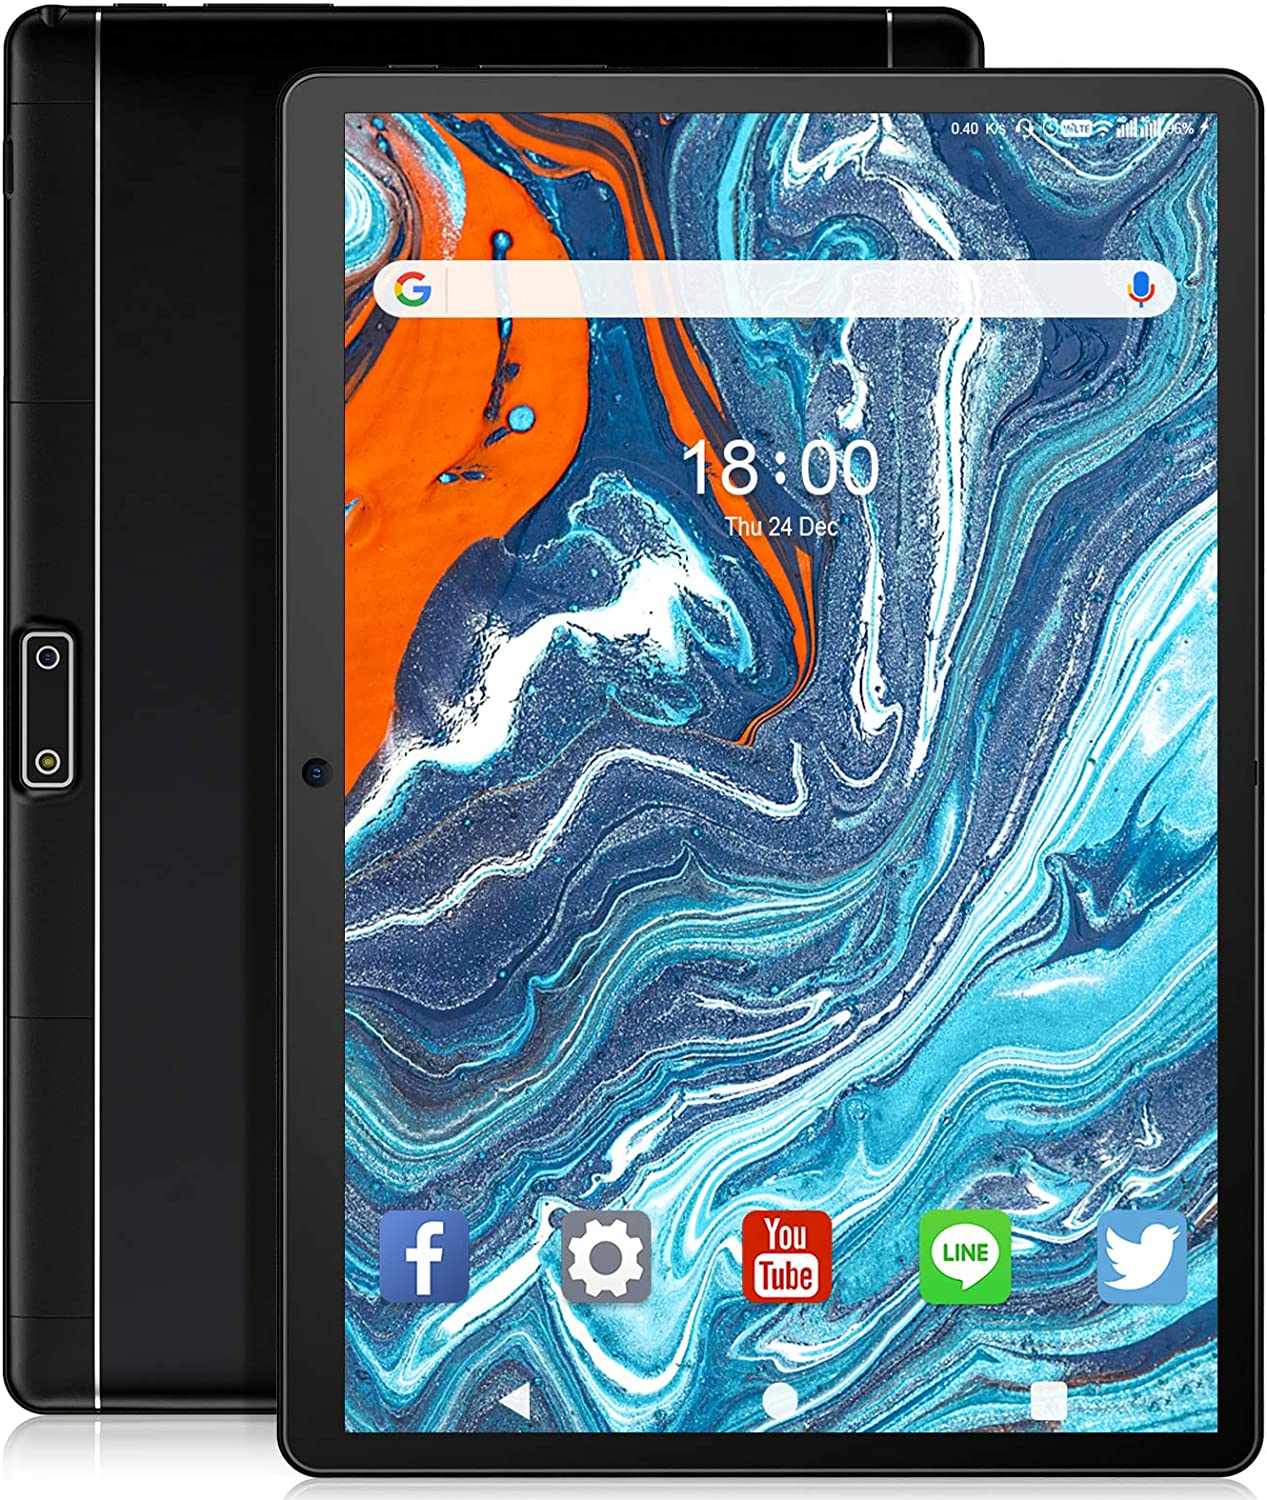 Tablet 10 inch Android Tablet, Quad-Core Processor 32GB Storage, Dual Sim Card, WiFi, Bluetooth, GPS, 128GB Expand Support, IPS Full HD Display (Black)